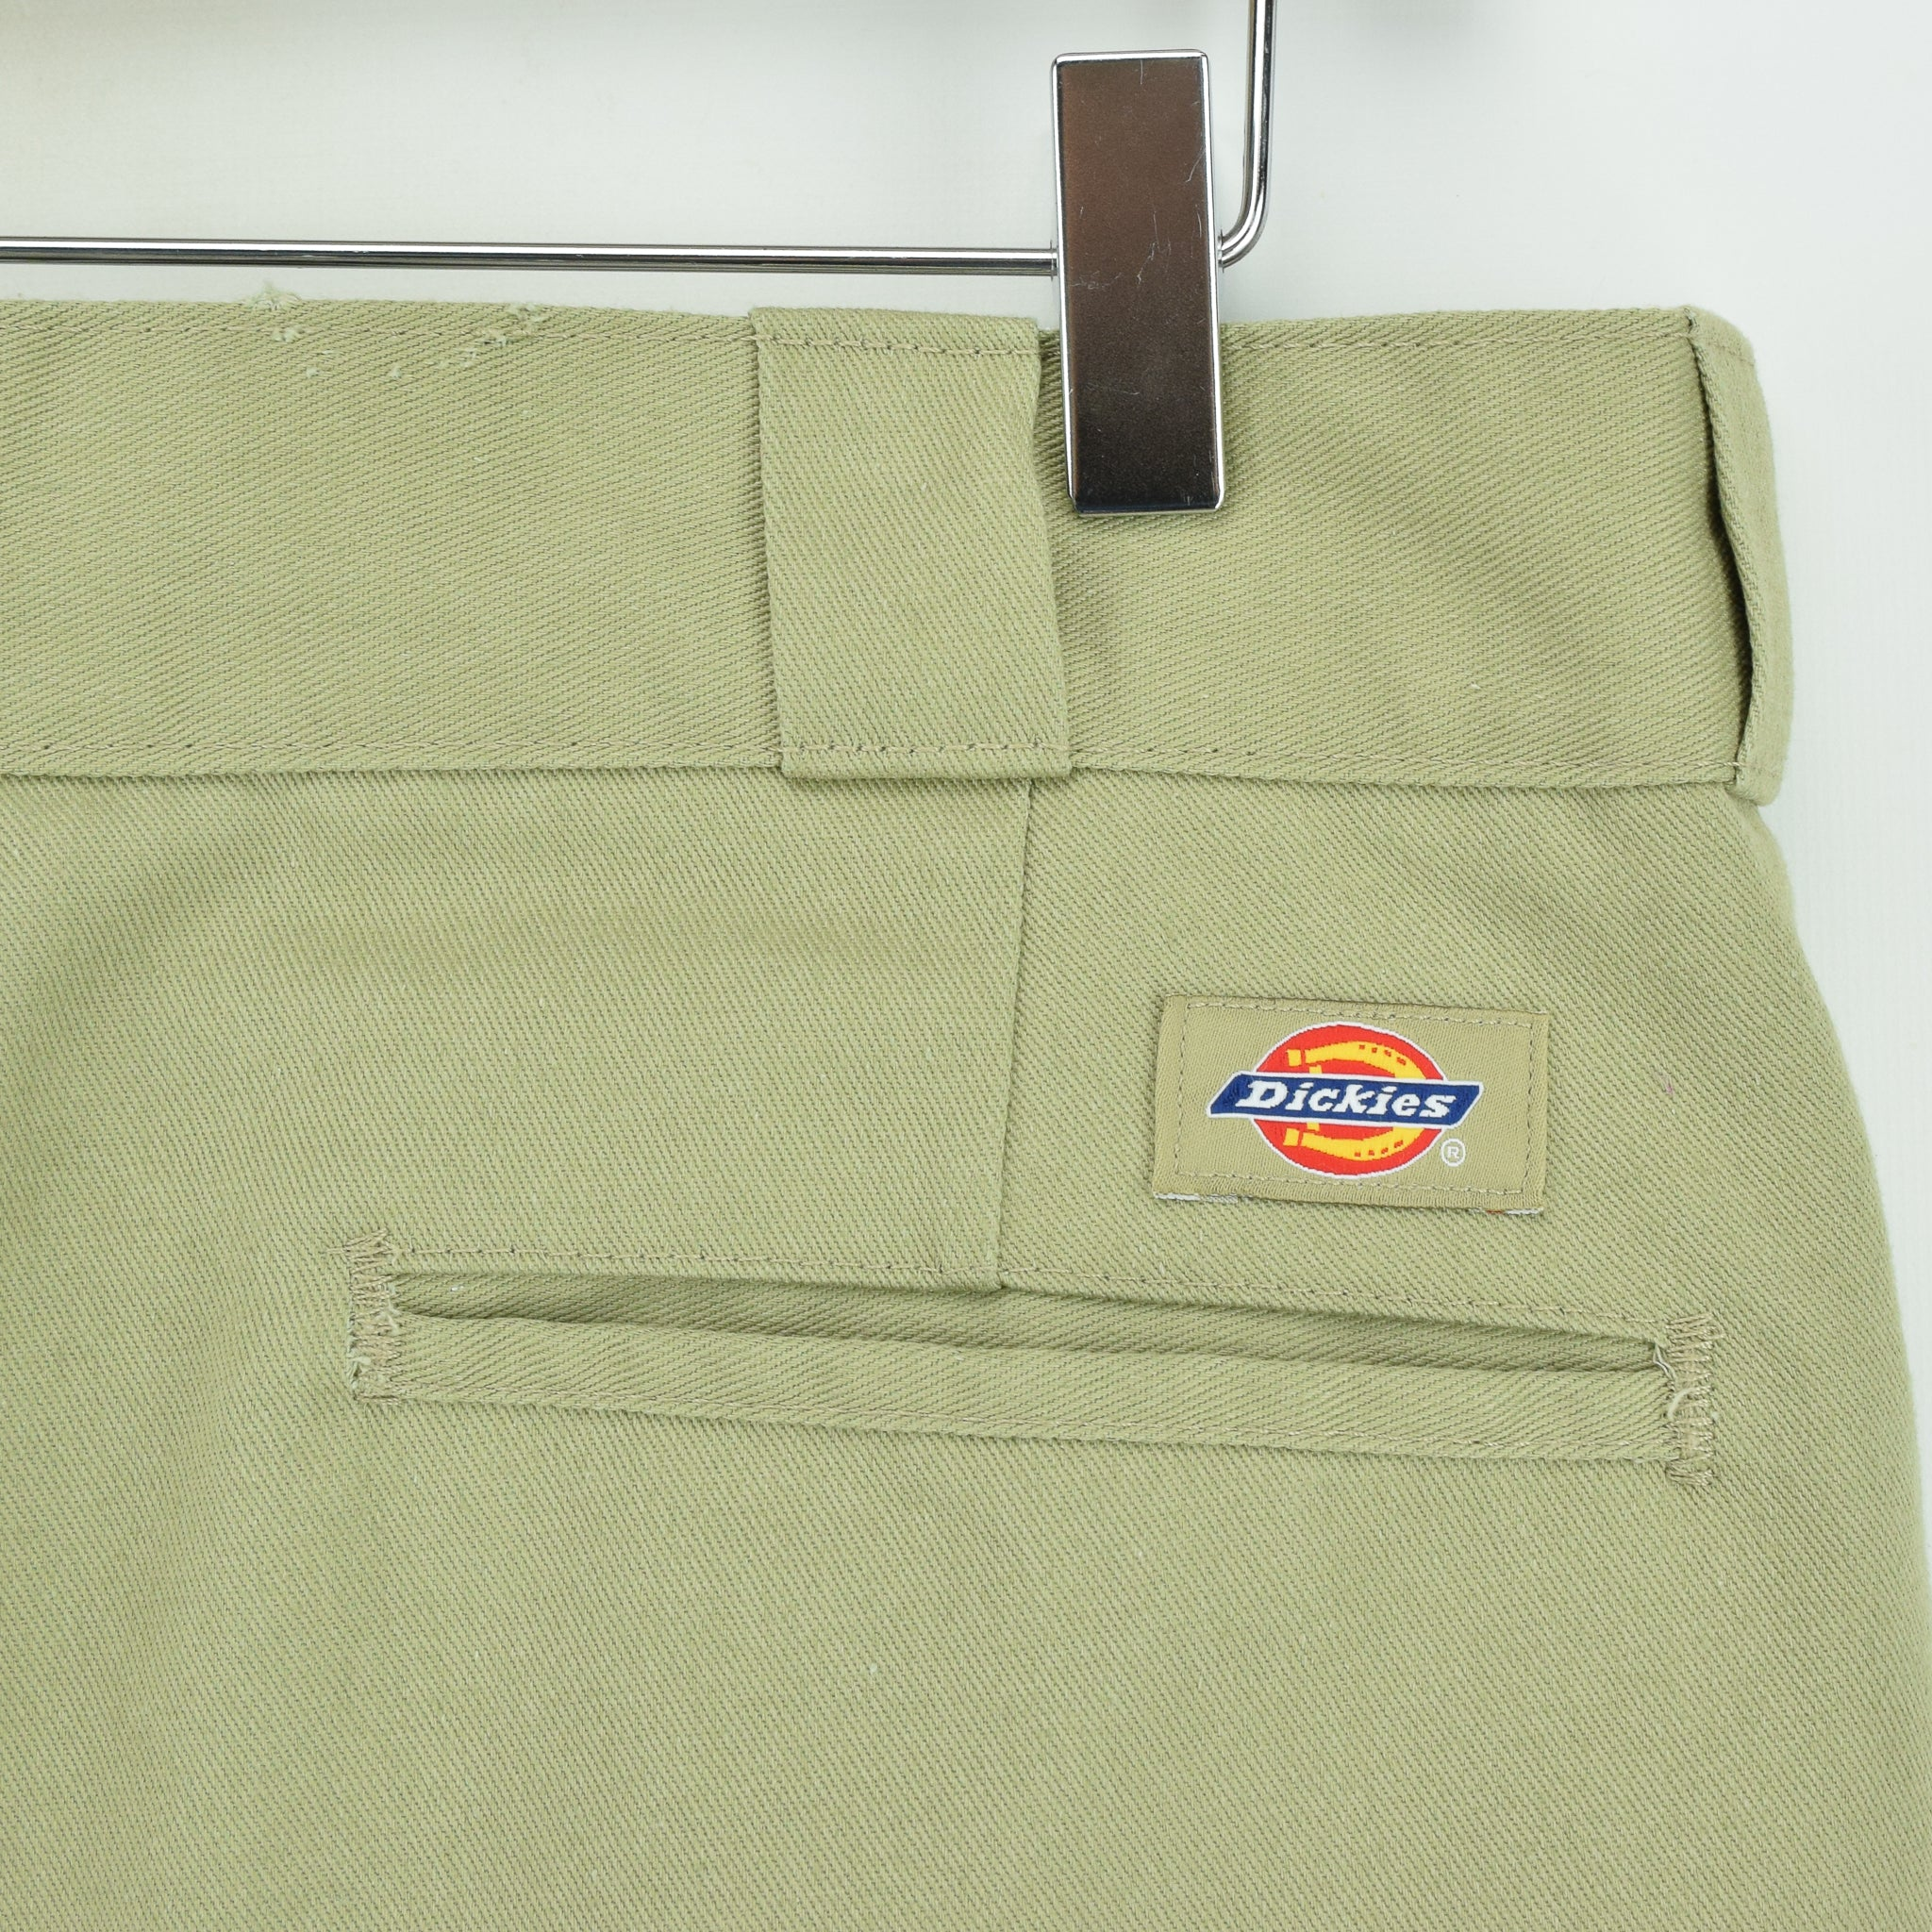 Dickies Workwear 874 Original Fit Work Flat Front Utility Trousers 32 W 30 L back pocket